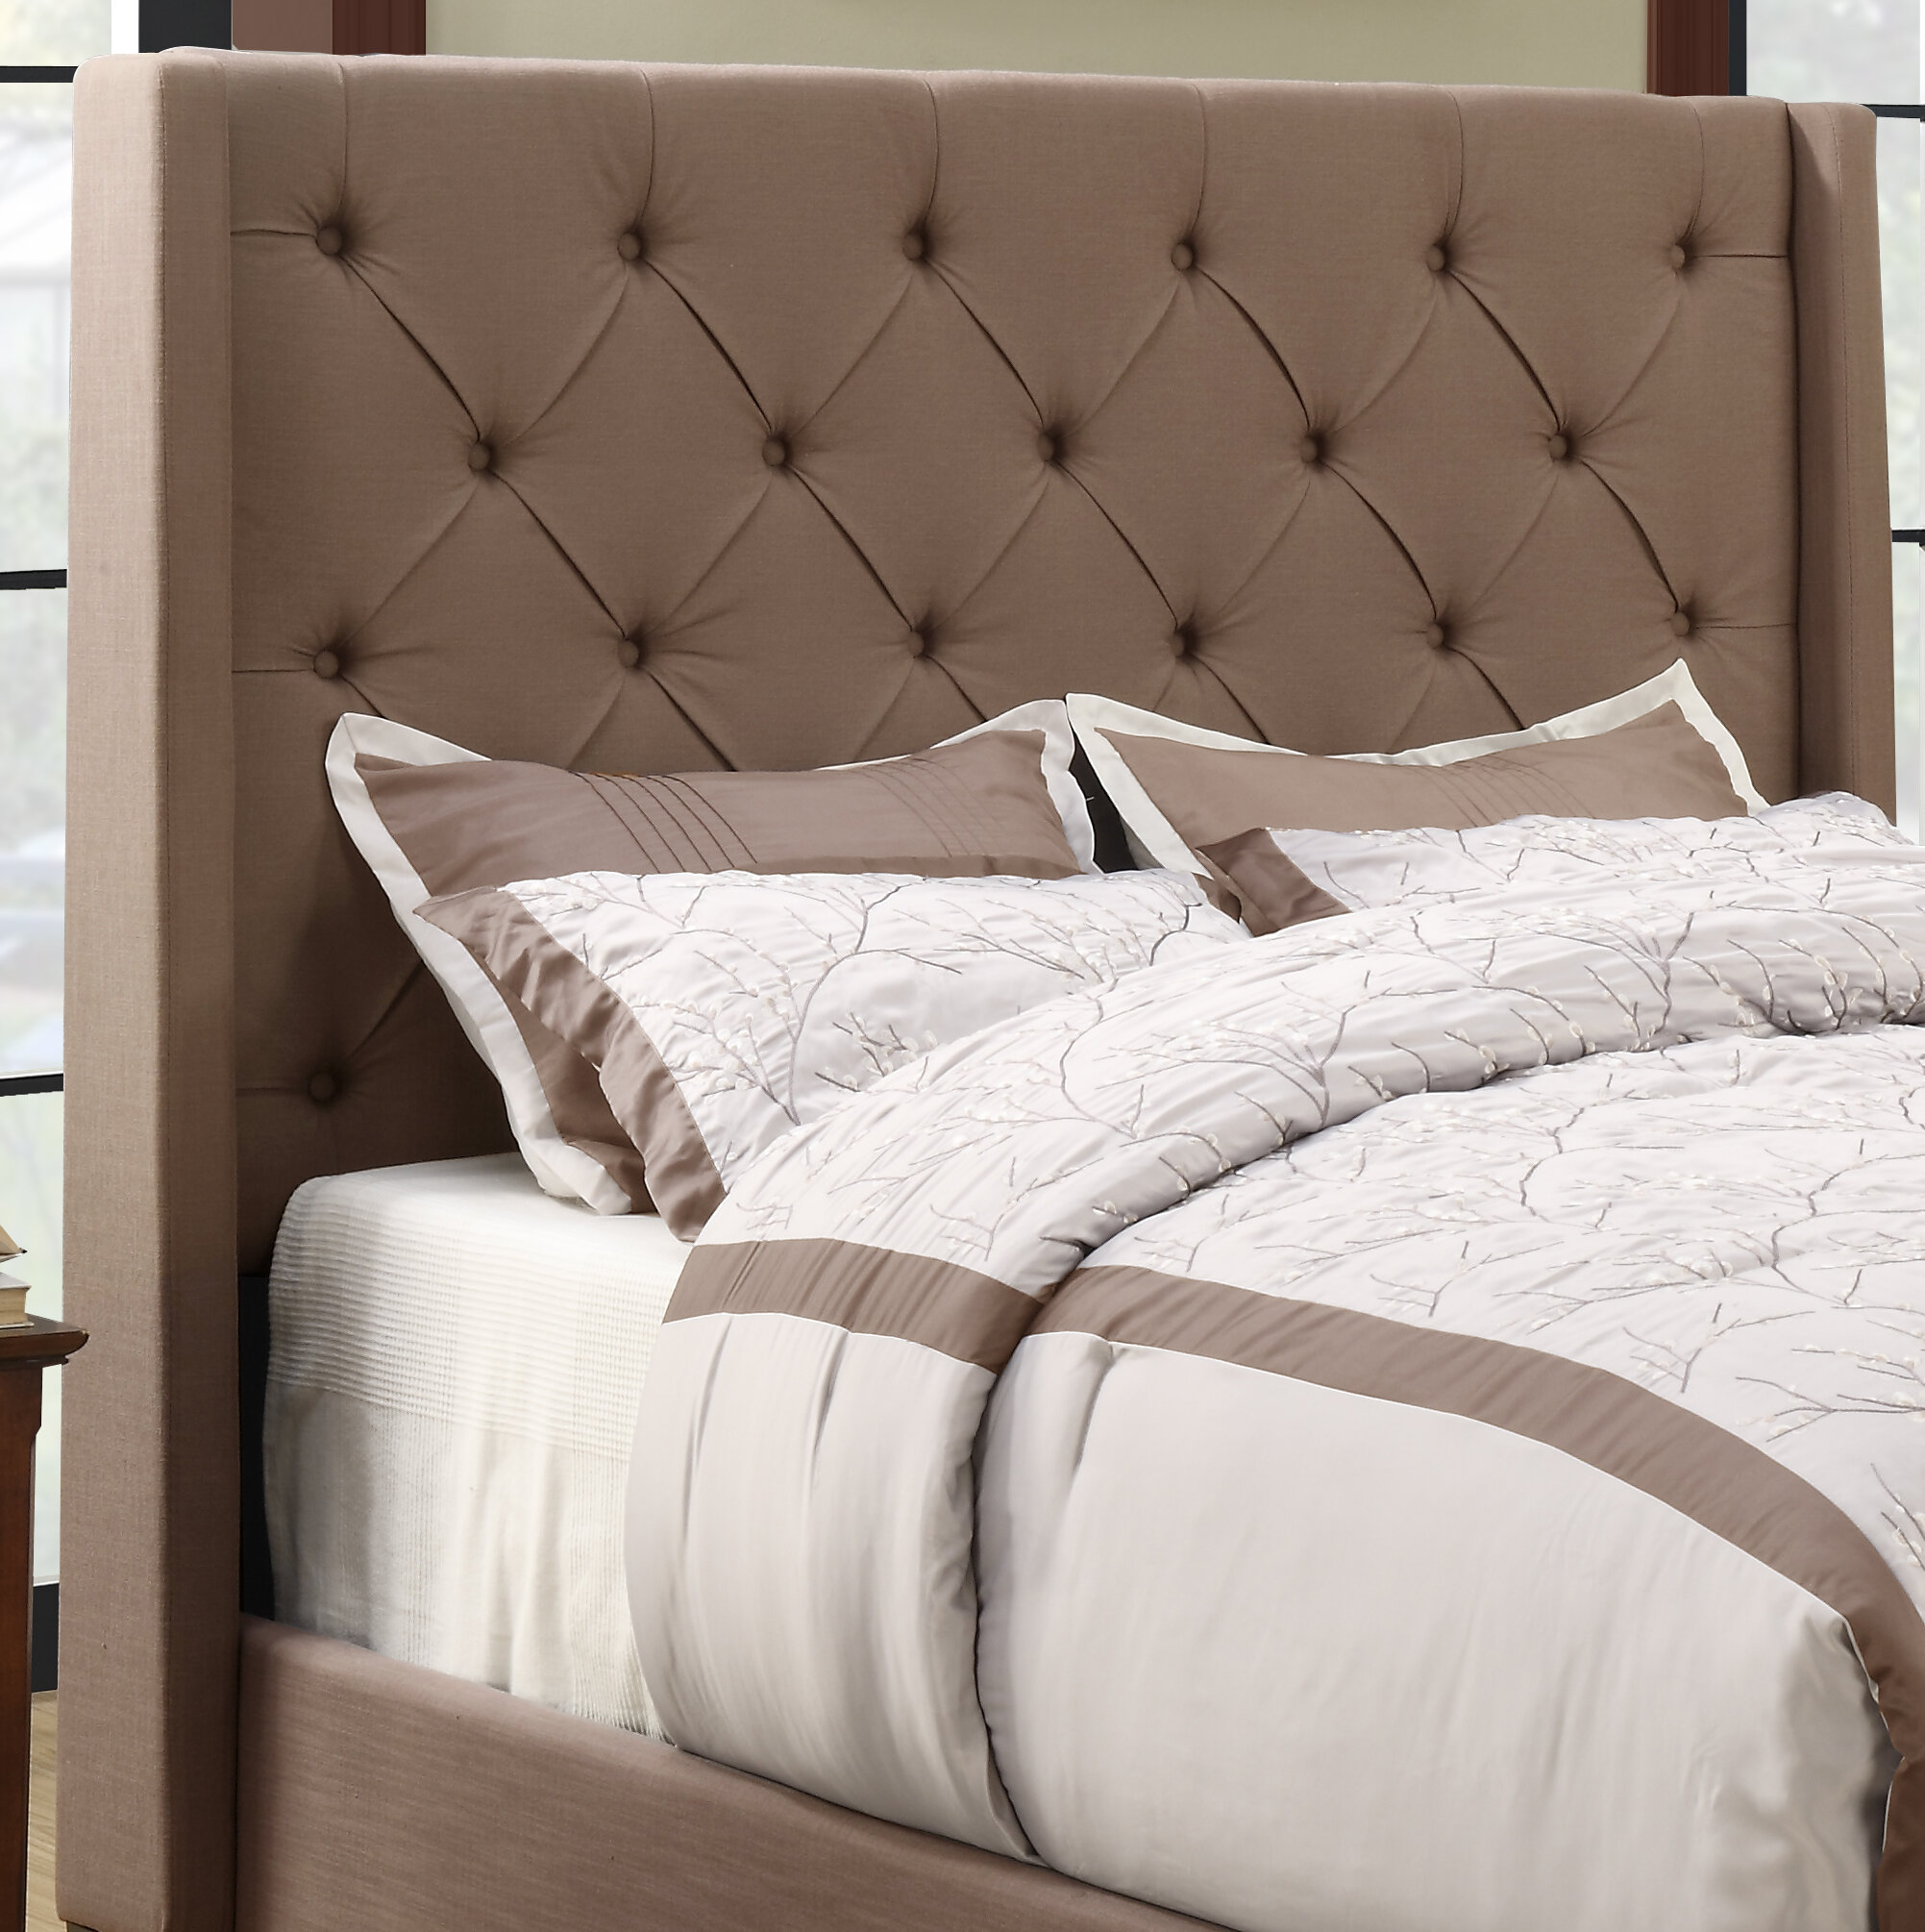 gallery shui bed an use burlap in feng all upholstered the bedroom headboard view about